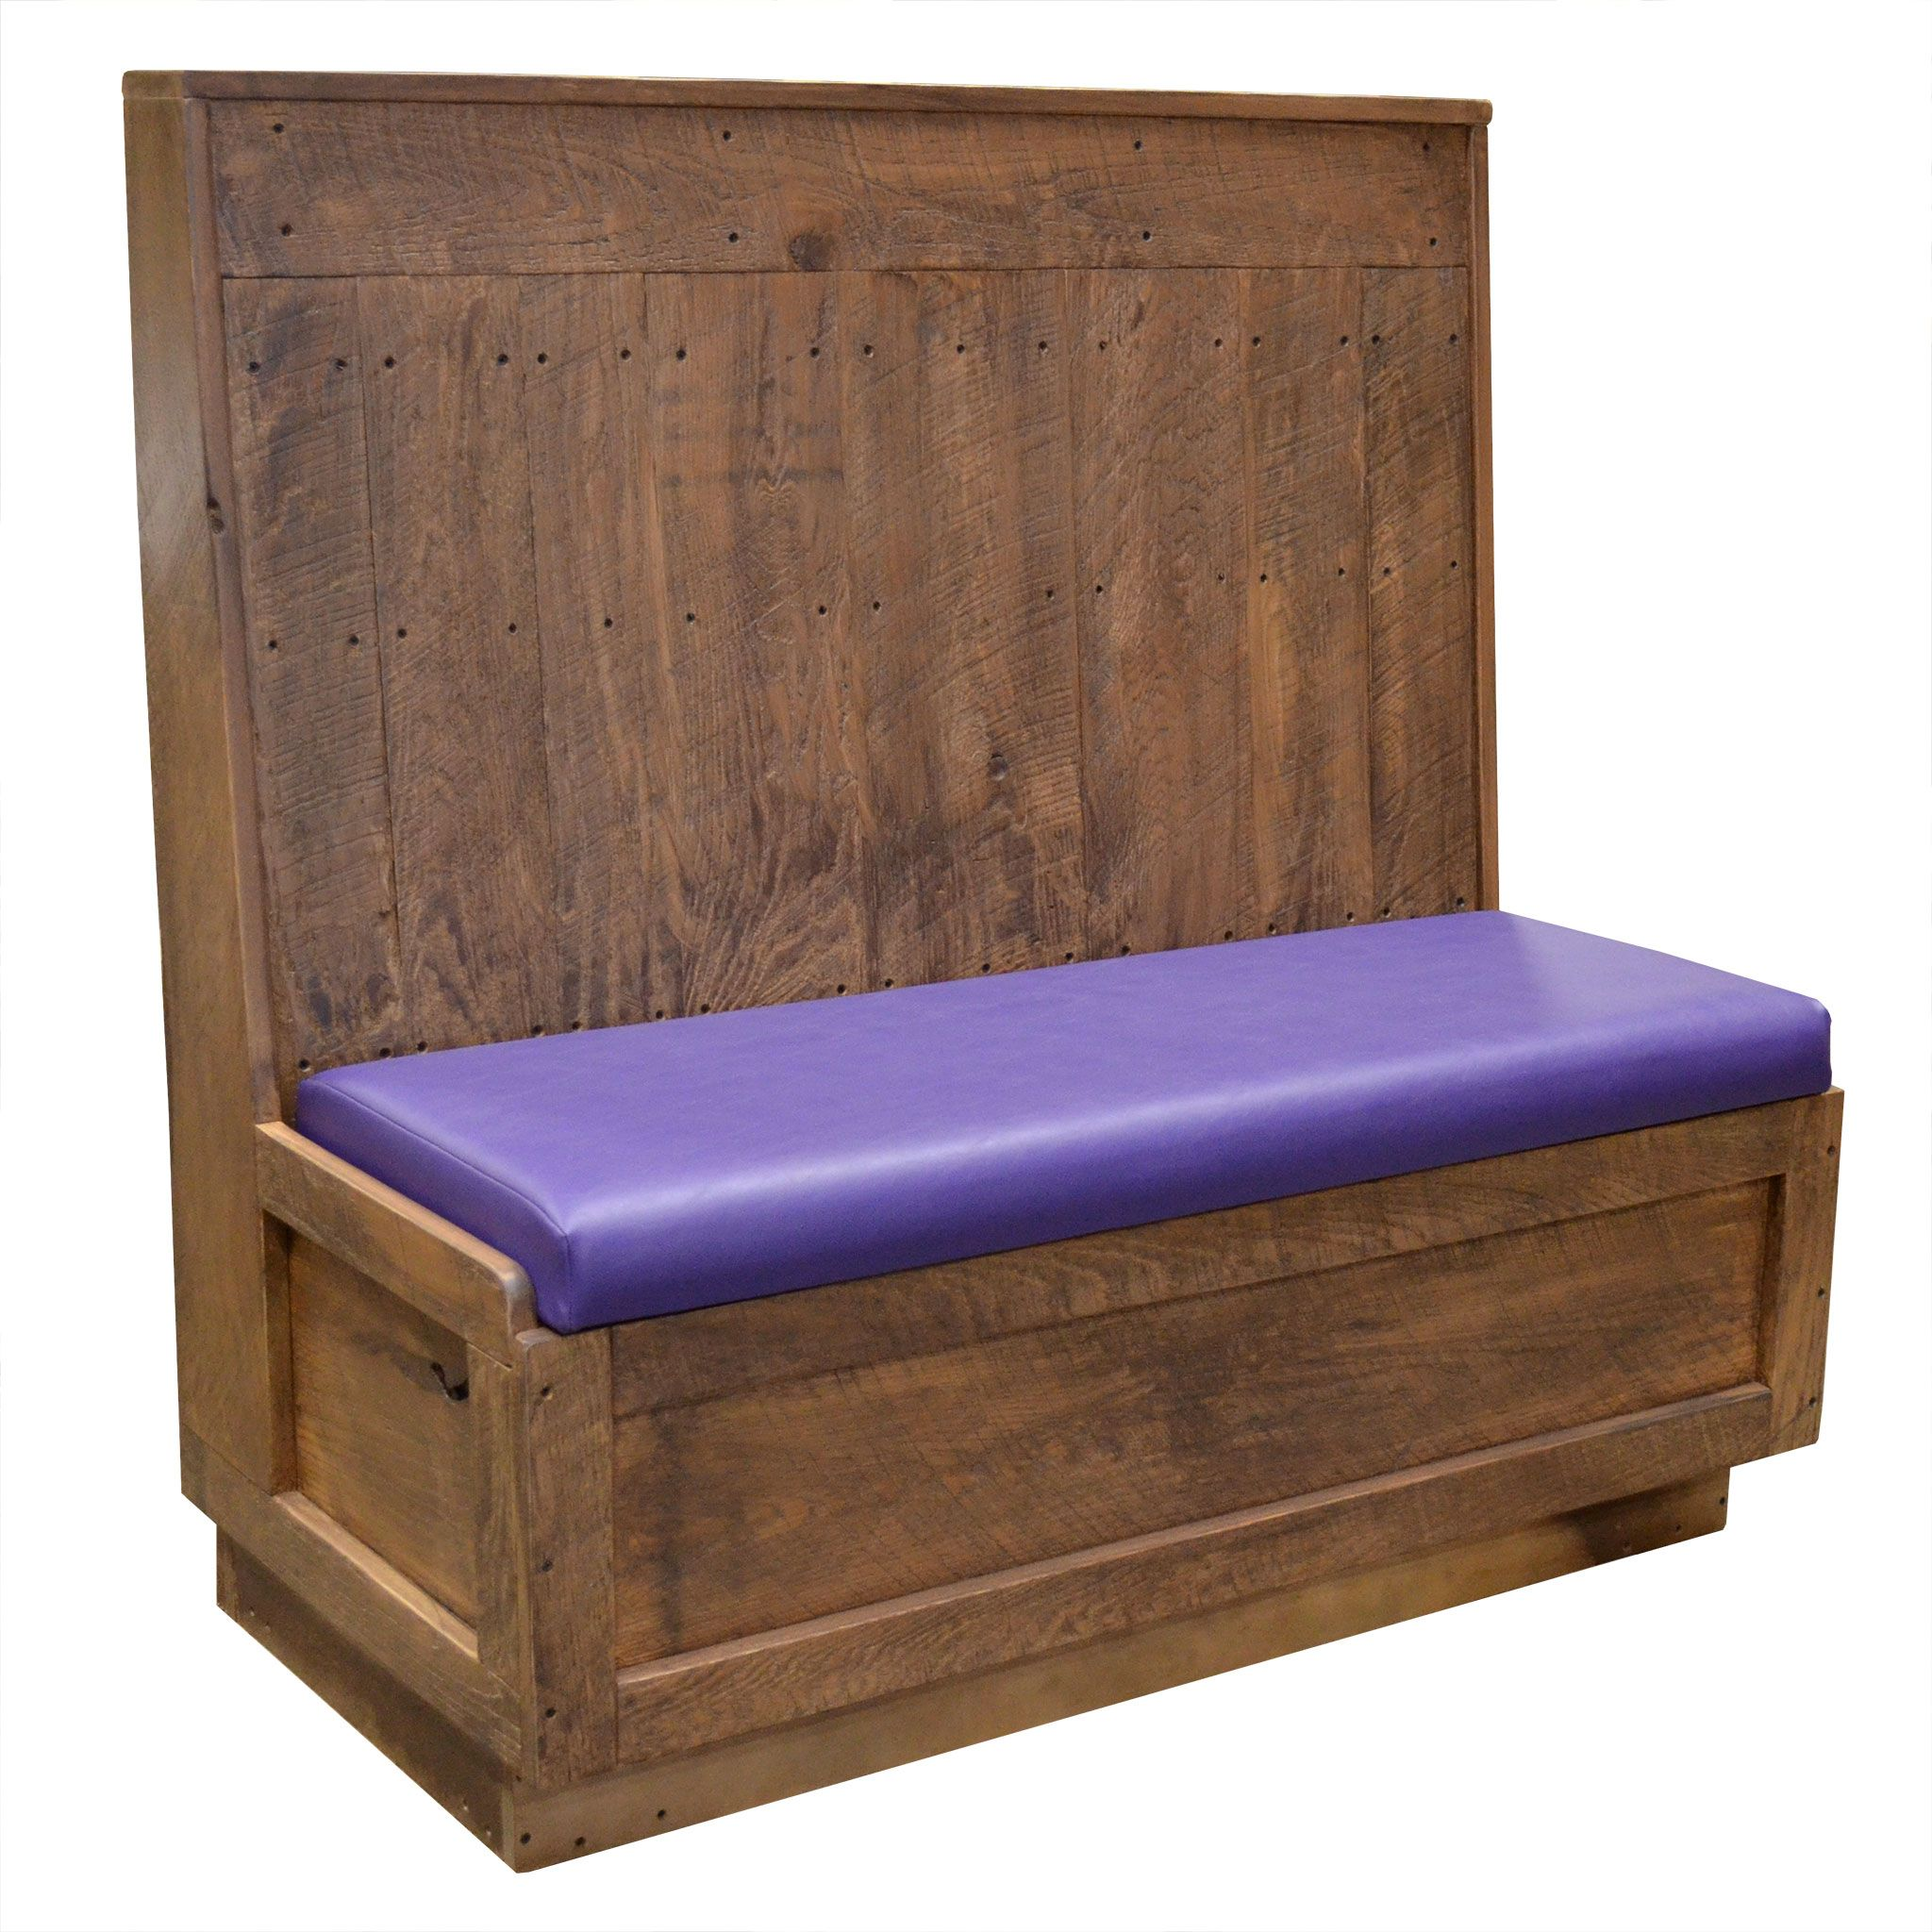 East Coast Chair And Barstool Inc Rent A Tent Tables Chairs Reclaimed Wood Purple Vinyl Restaurant Booth